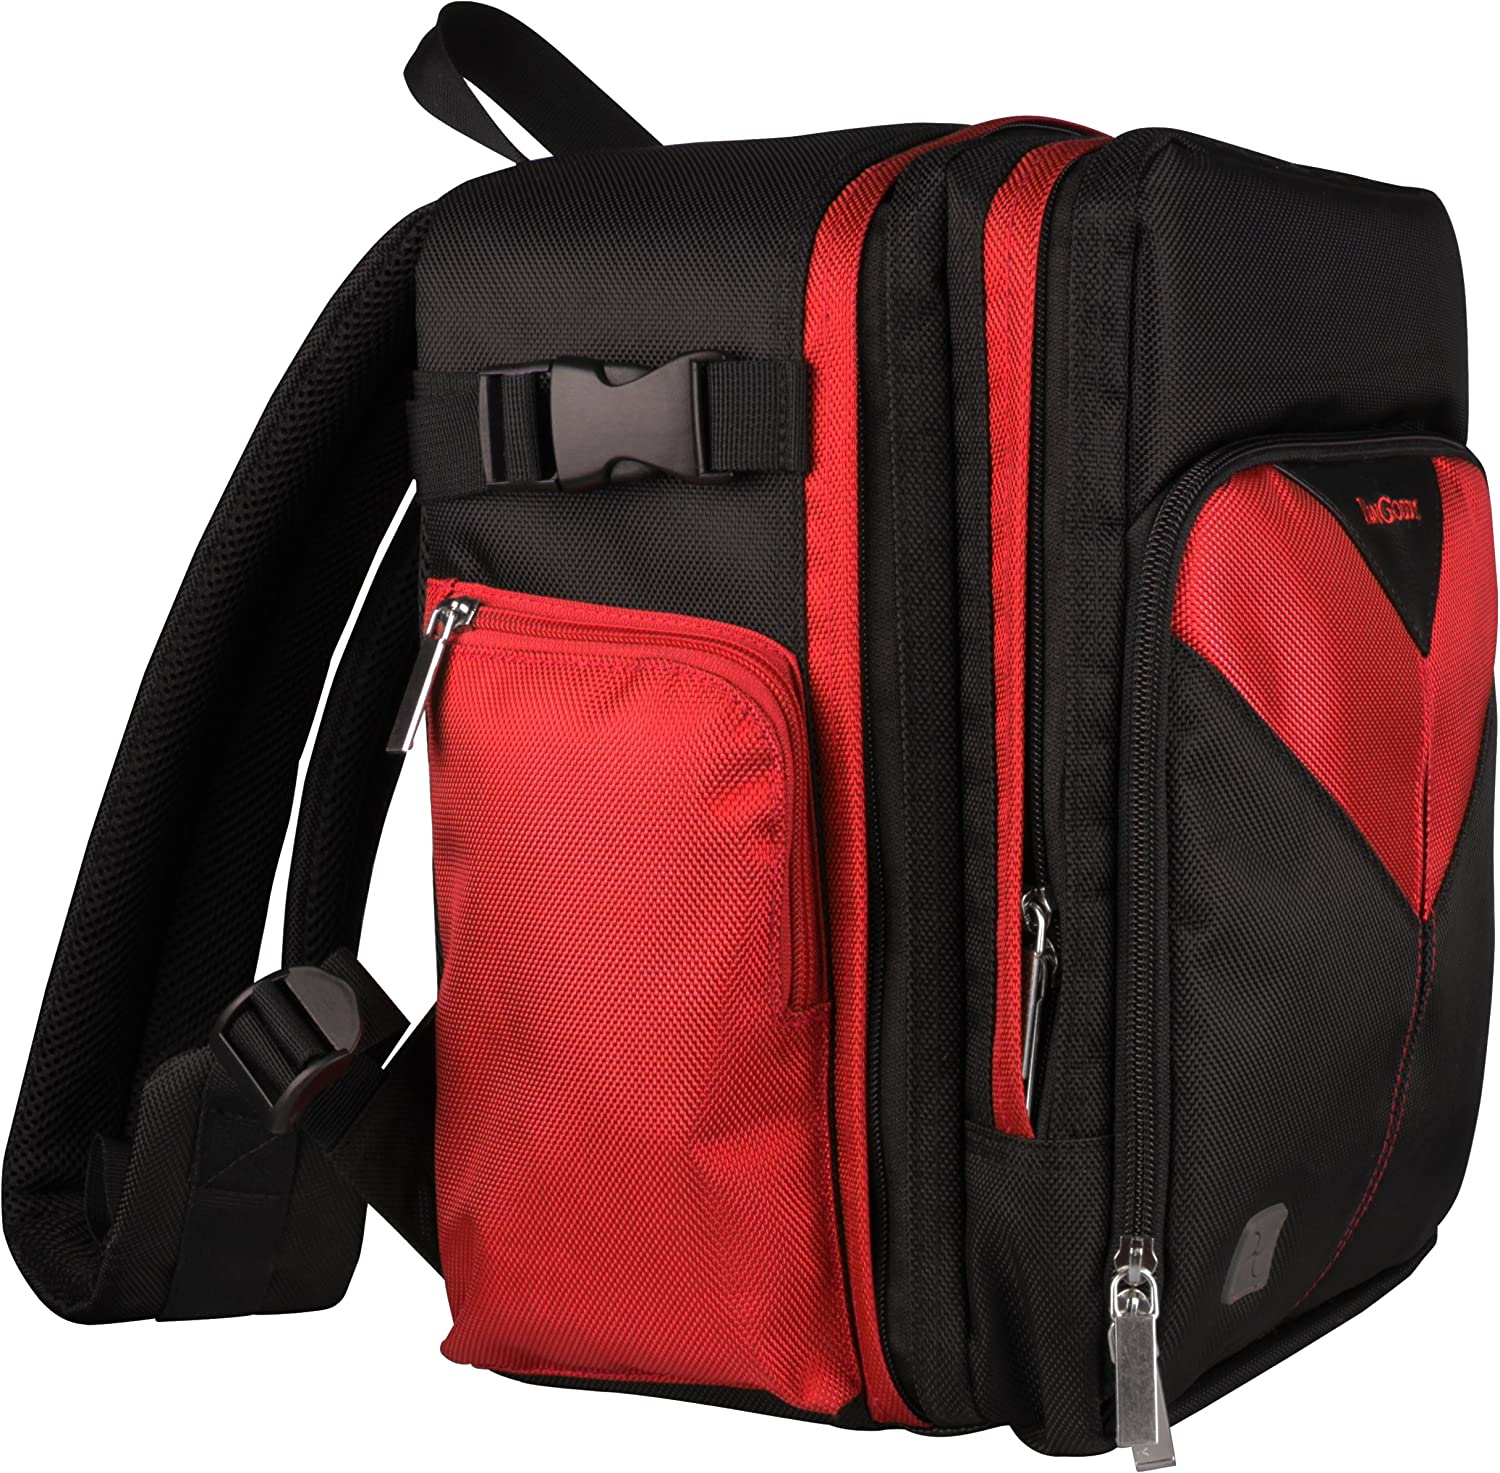 for Nikon D4 Sparta Travel Nylon Backpack Bag D4s D40x Digital SLR Camera D4 Series Red, Black D40